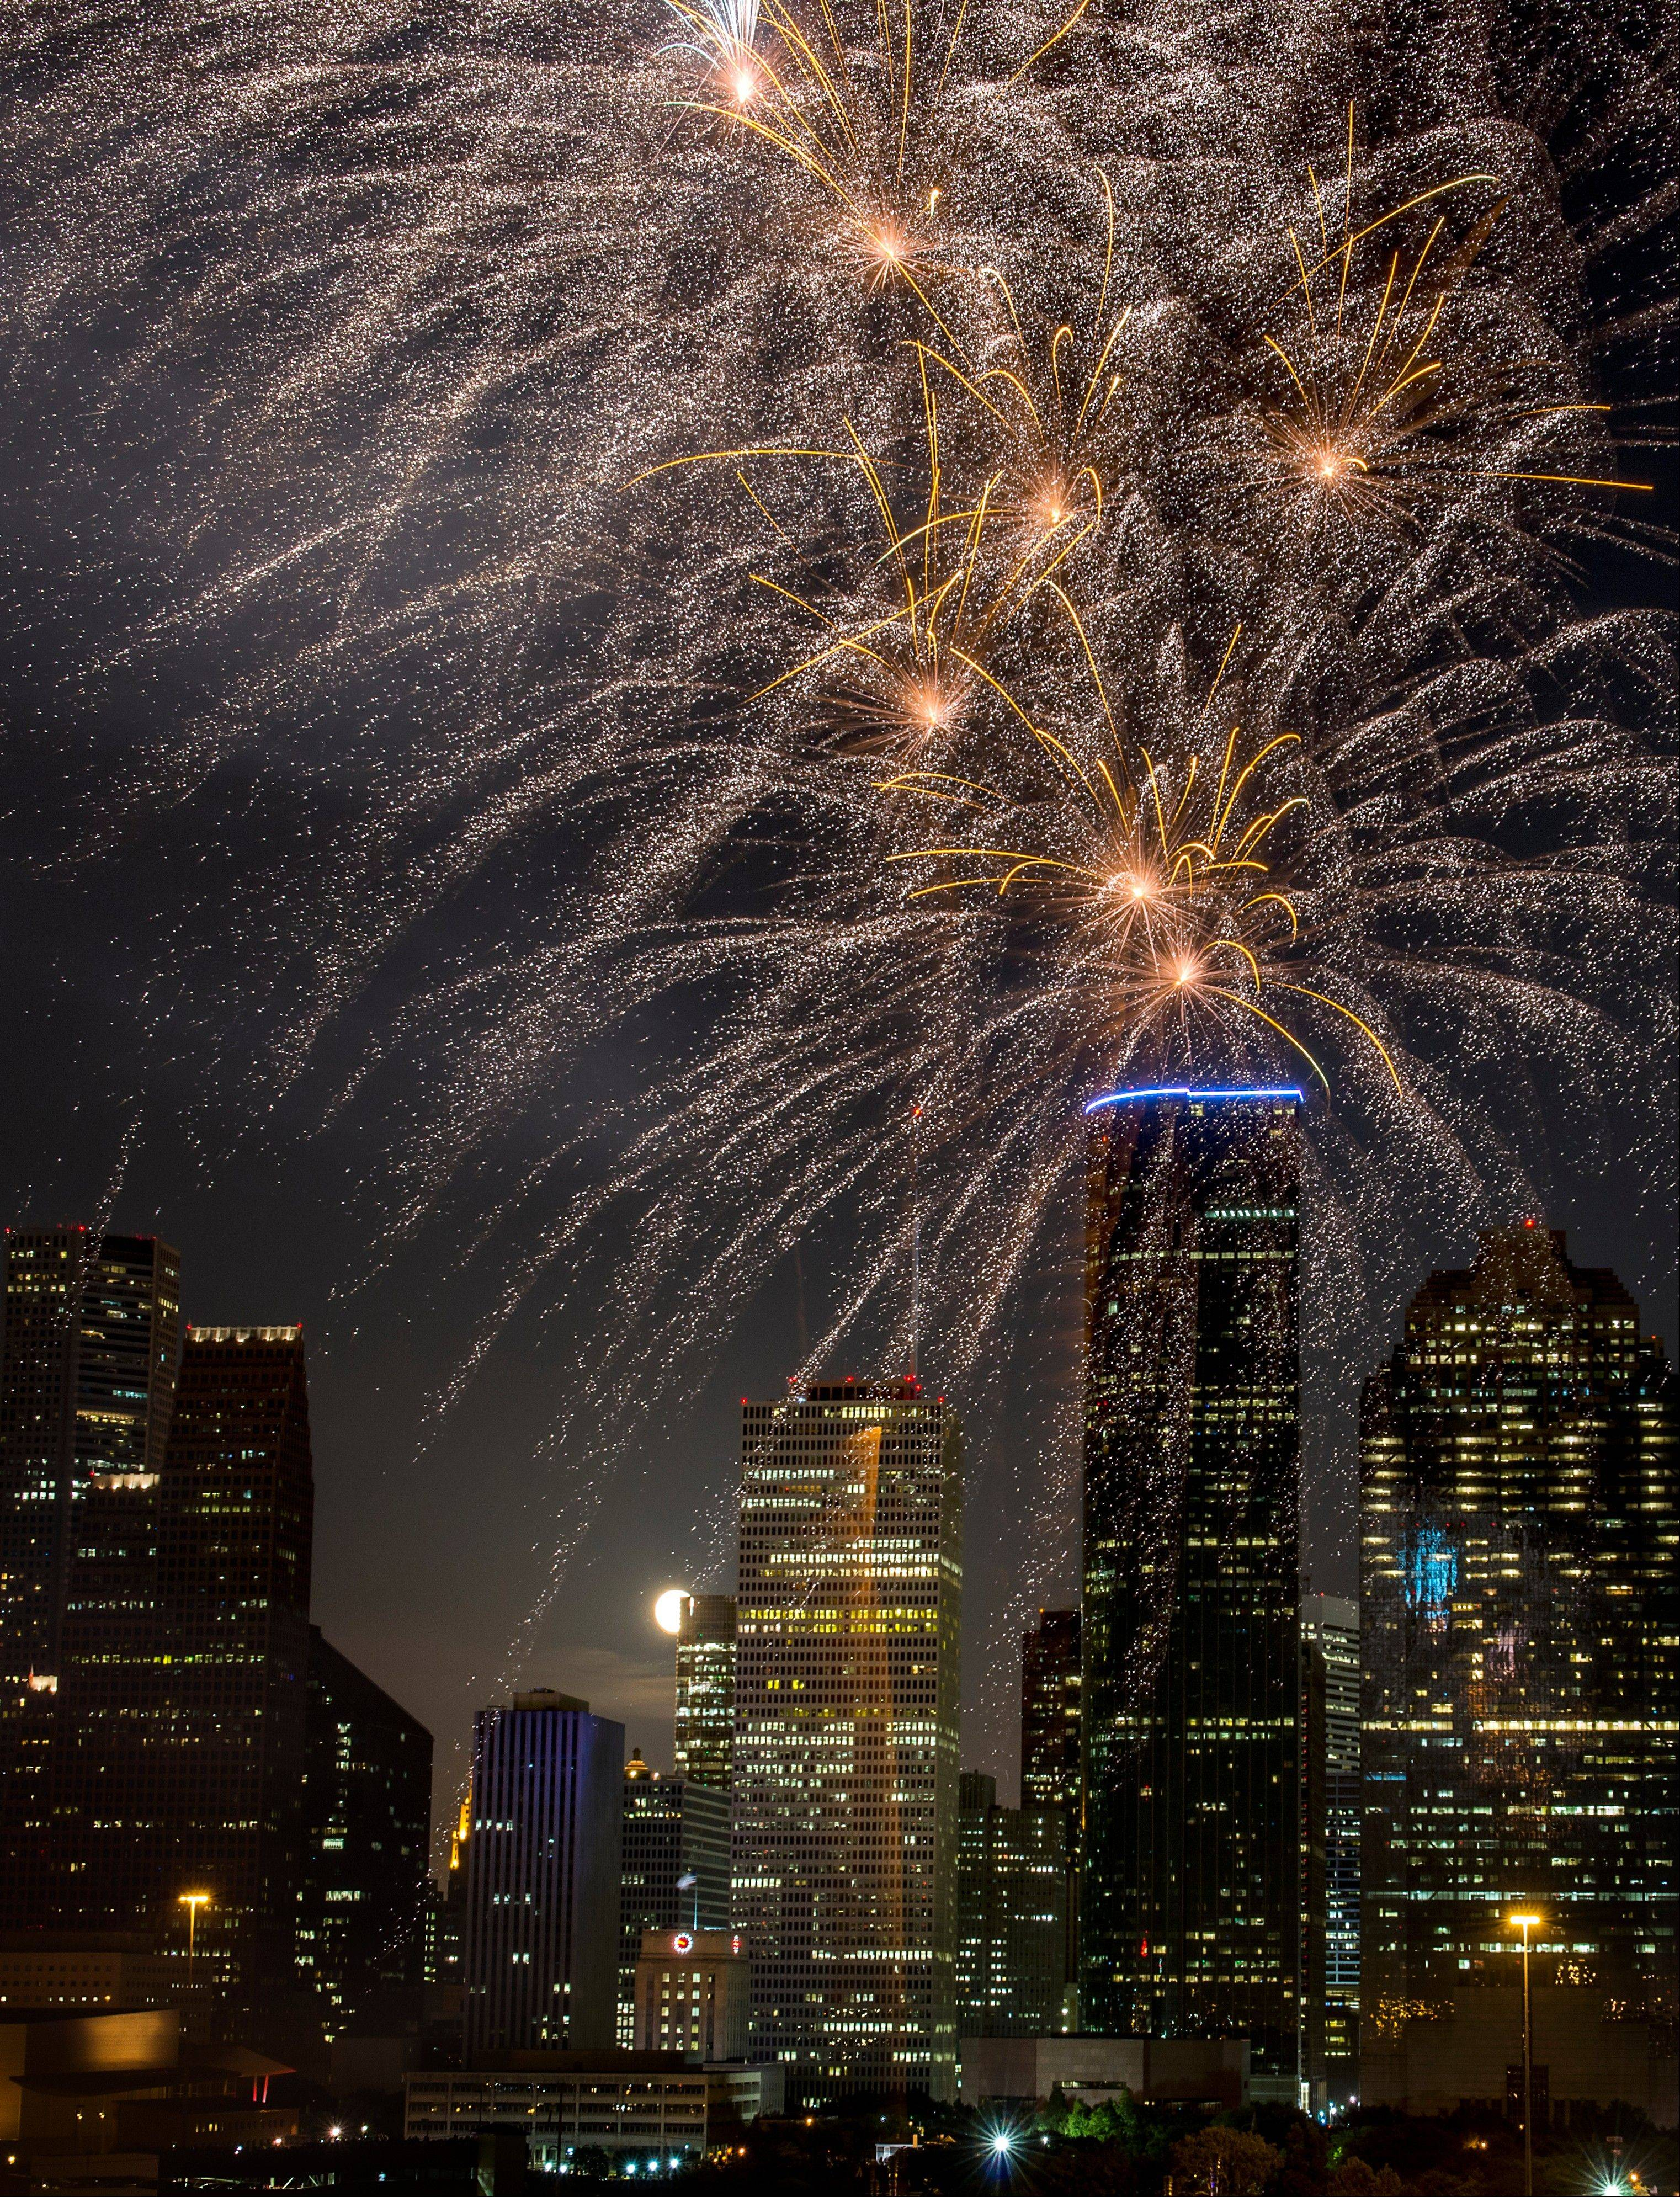 Fireworks light up the sky during the Freedom Over Texas annual Fourth of July celebration on Wednesday, July 4, 2012, in Houston.